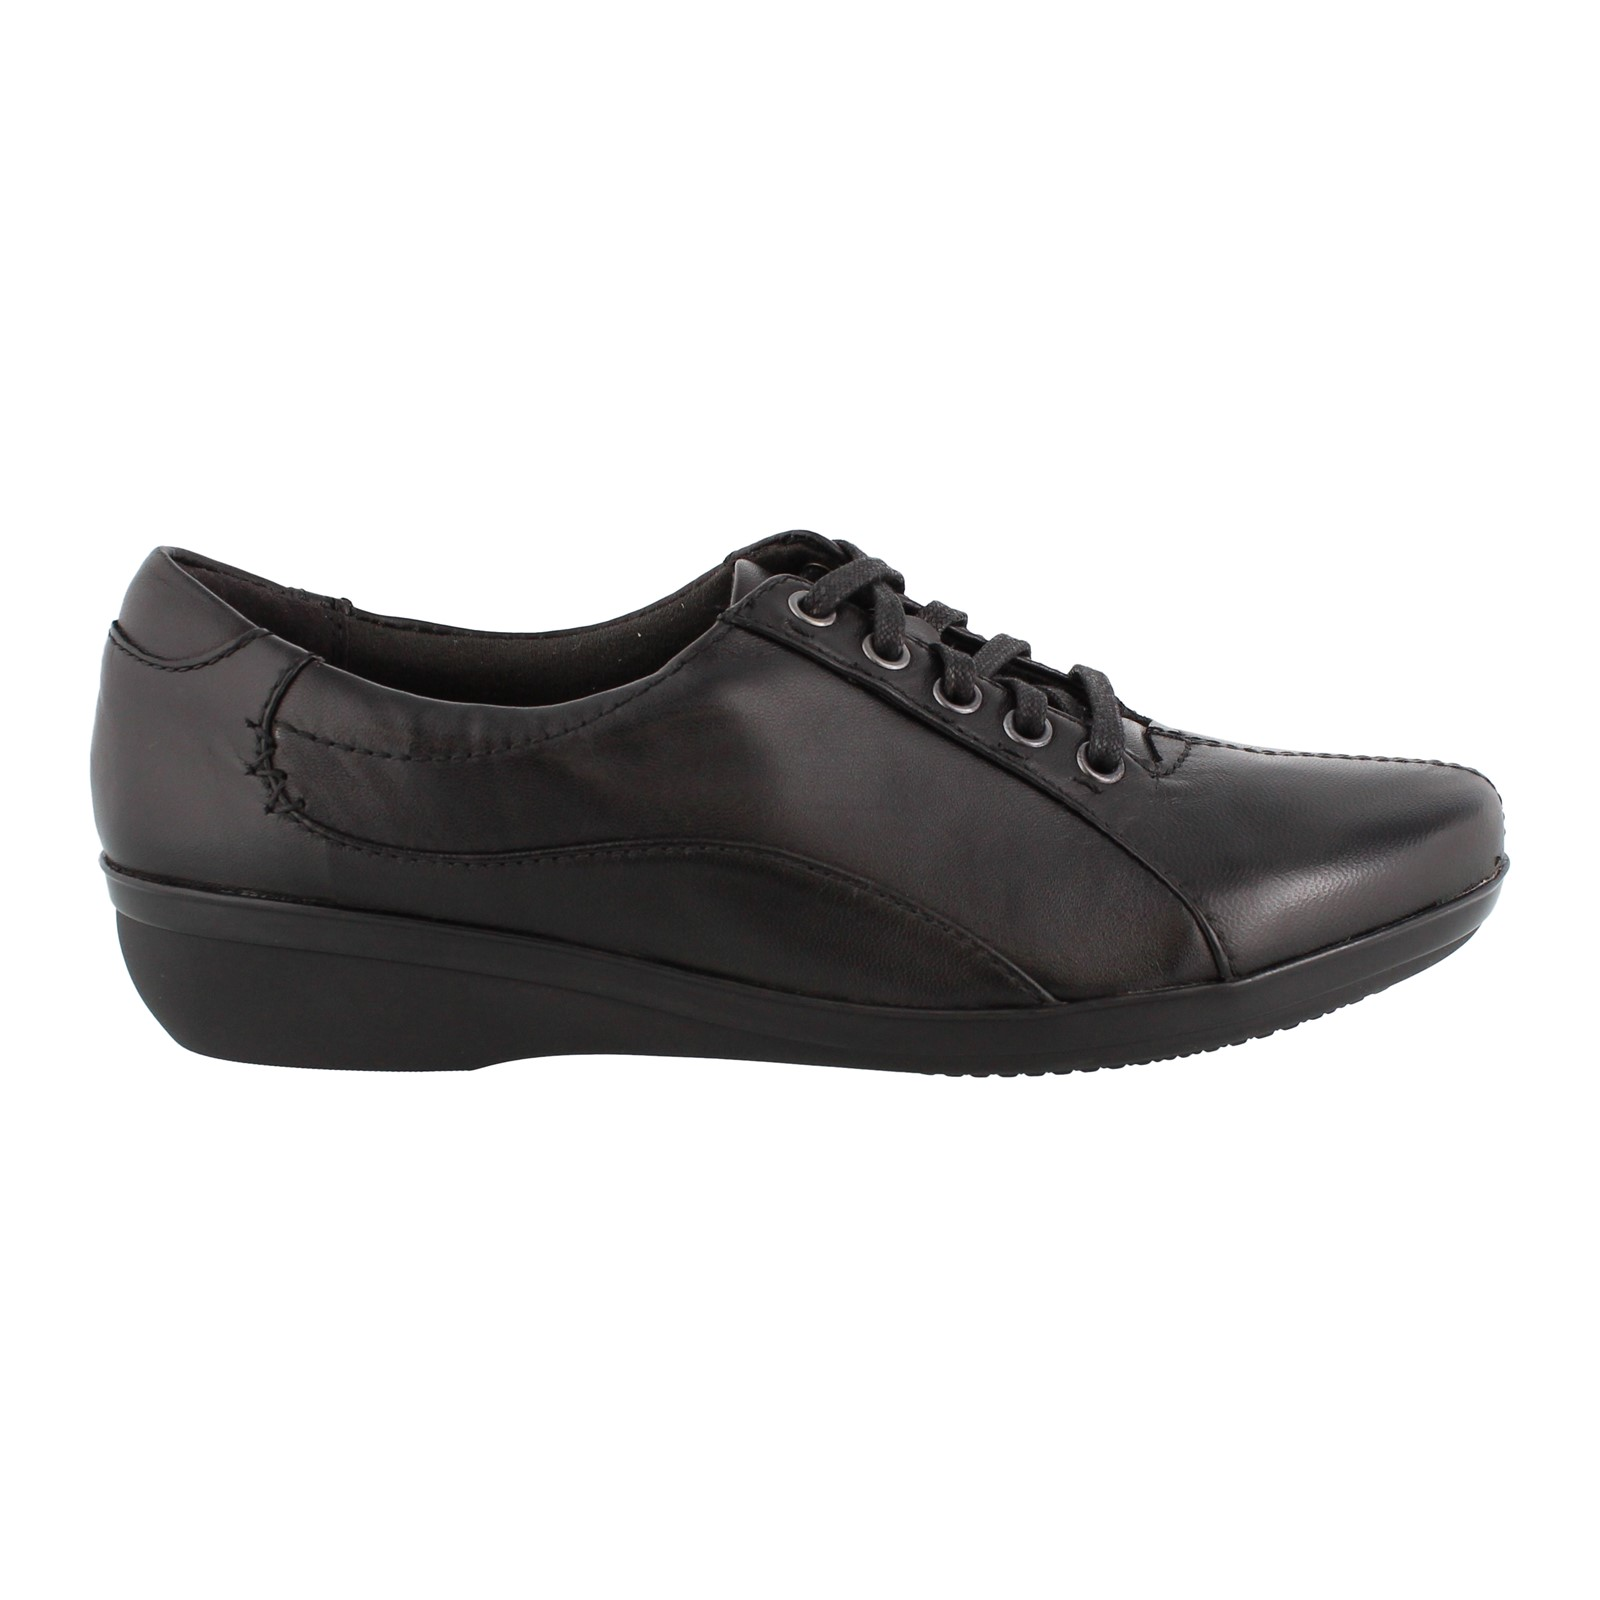 Women's Clarks, Everlay Elma Lace up Shoe